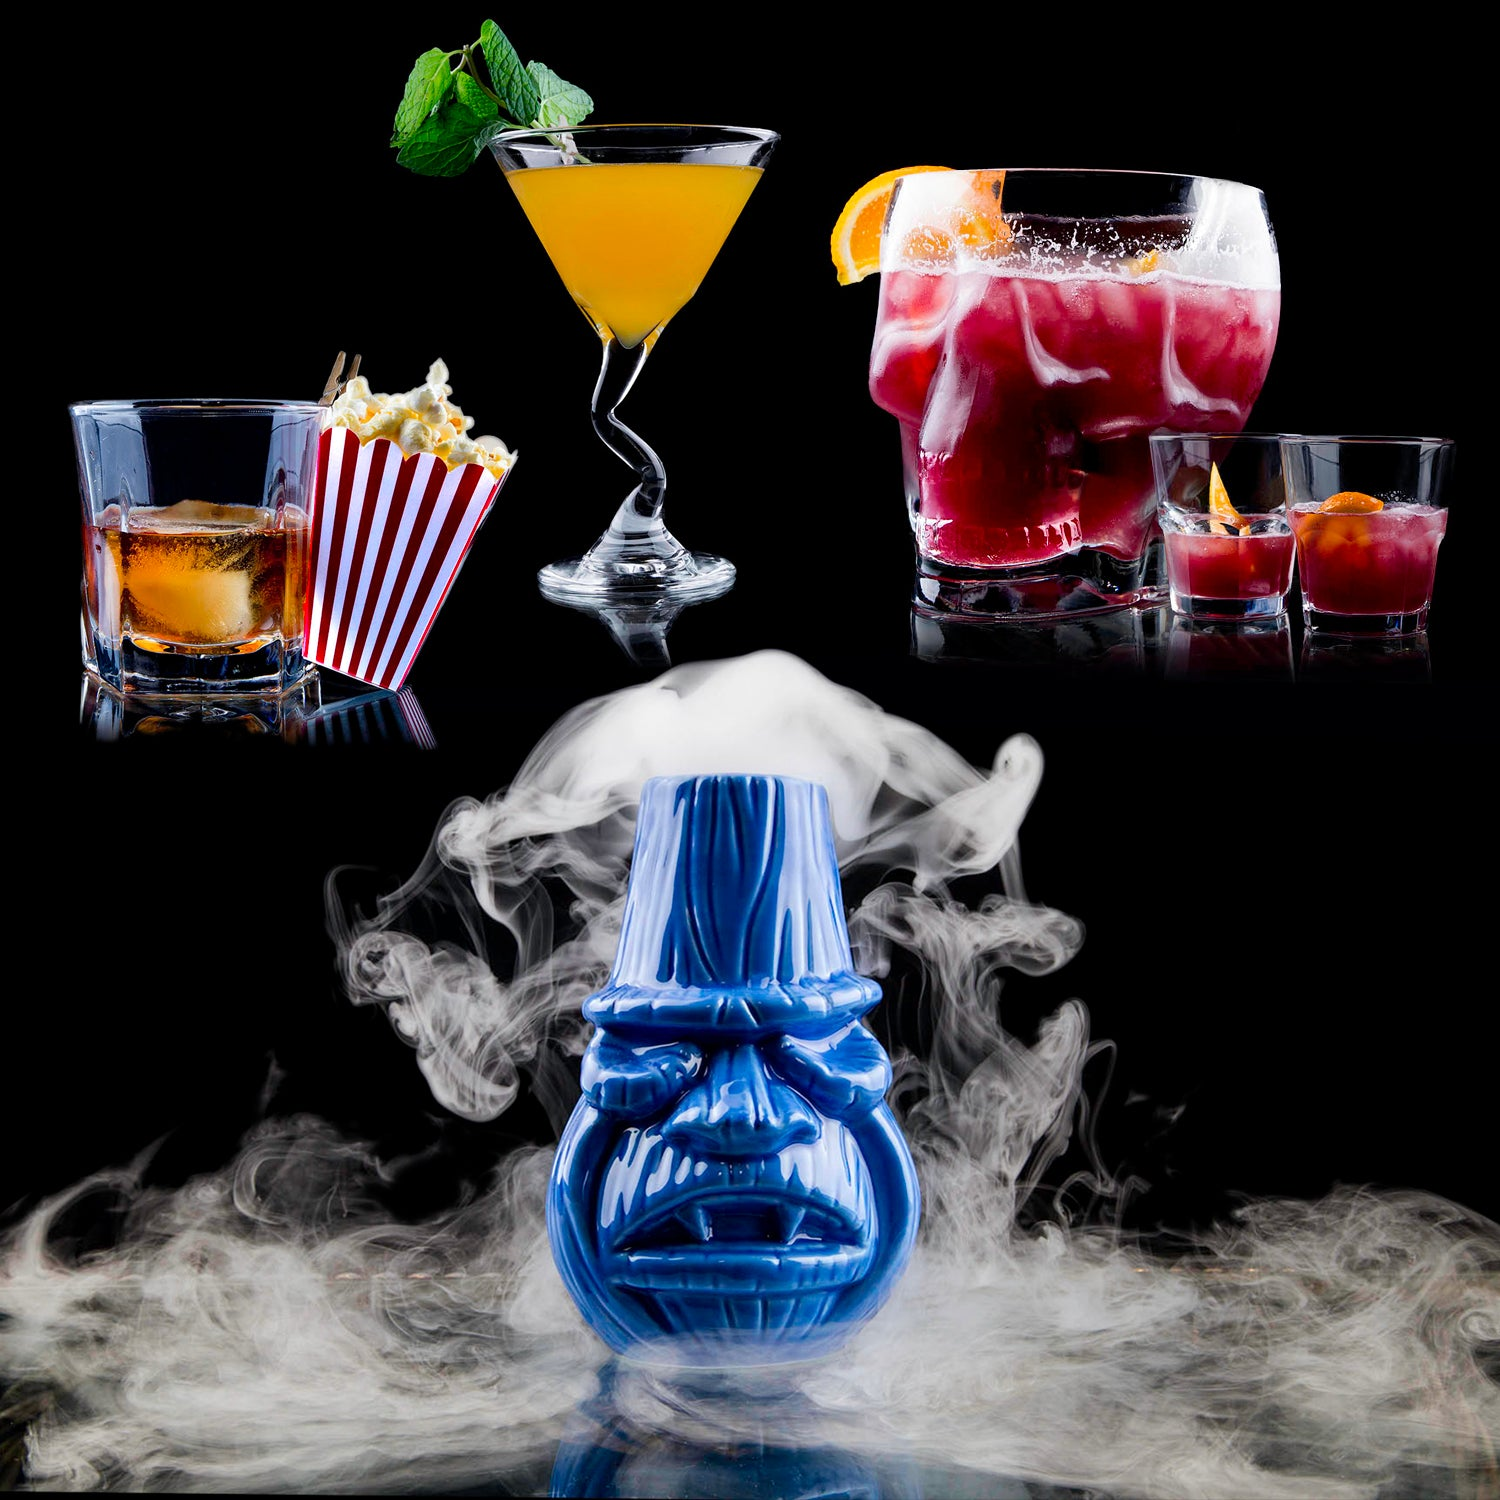 Dracula's Signature House Cocktails